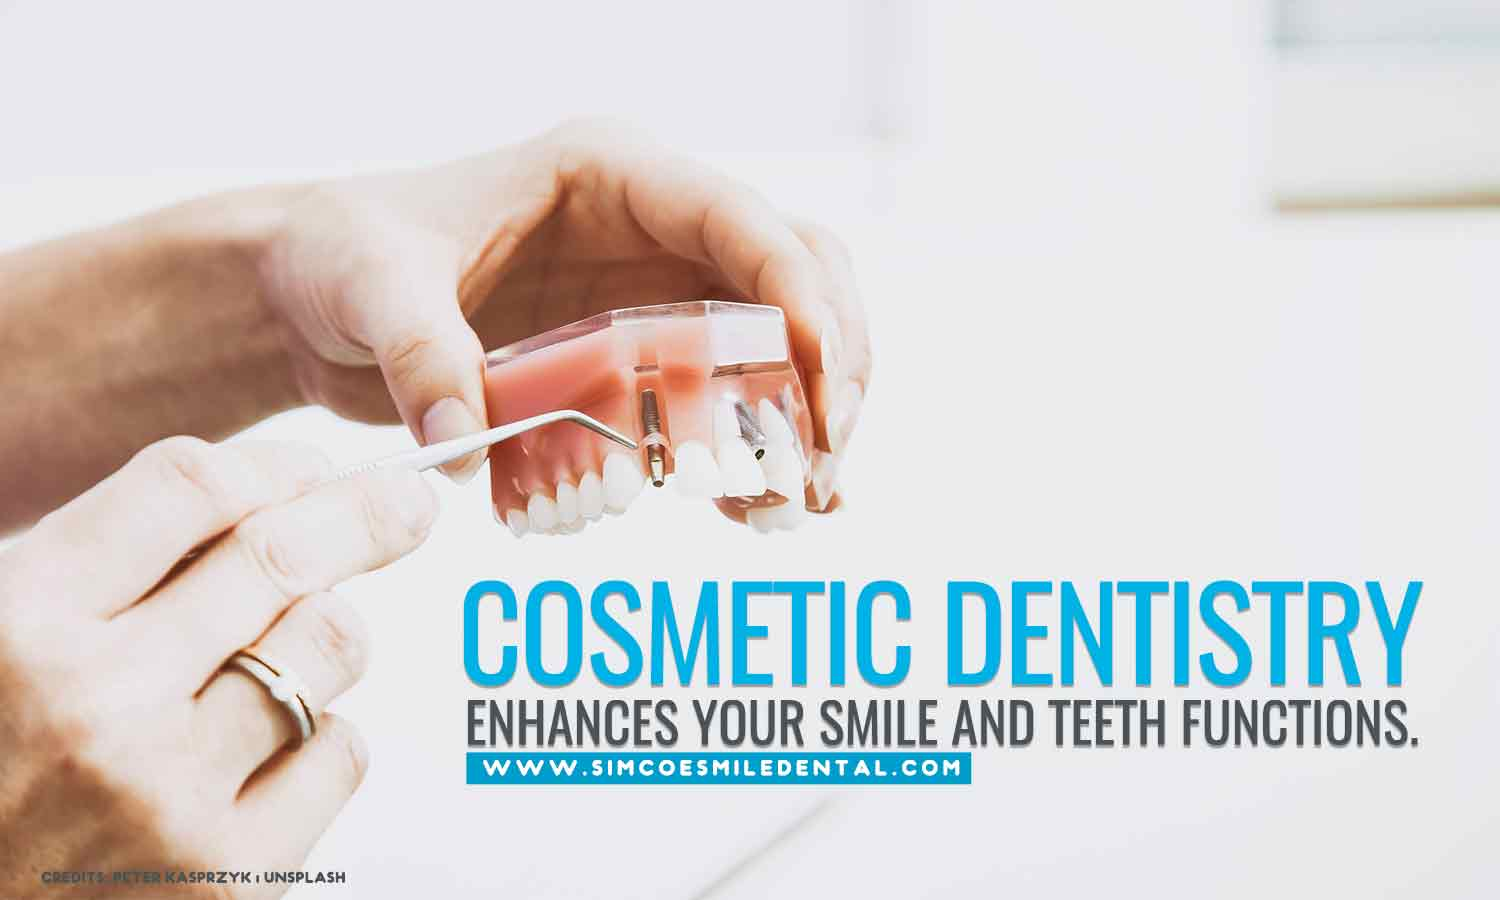 Cosmetic-dentistry-enhances-your-smile-and-teeth-functions Improve Your Smile with Cosmetic Dentistry